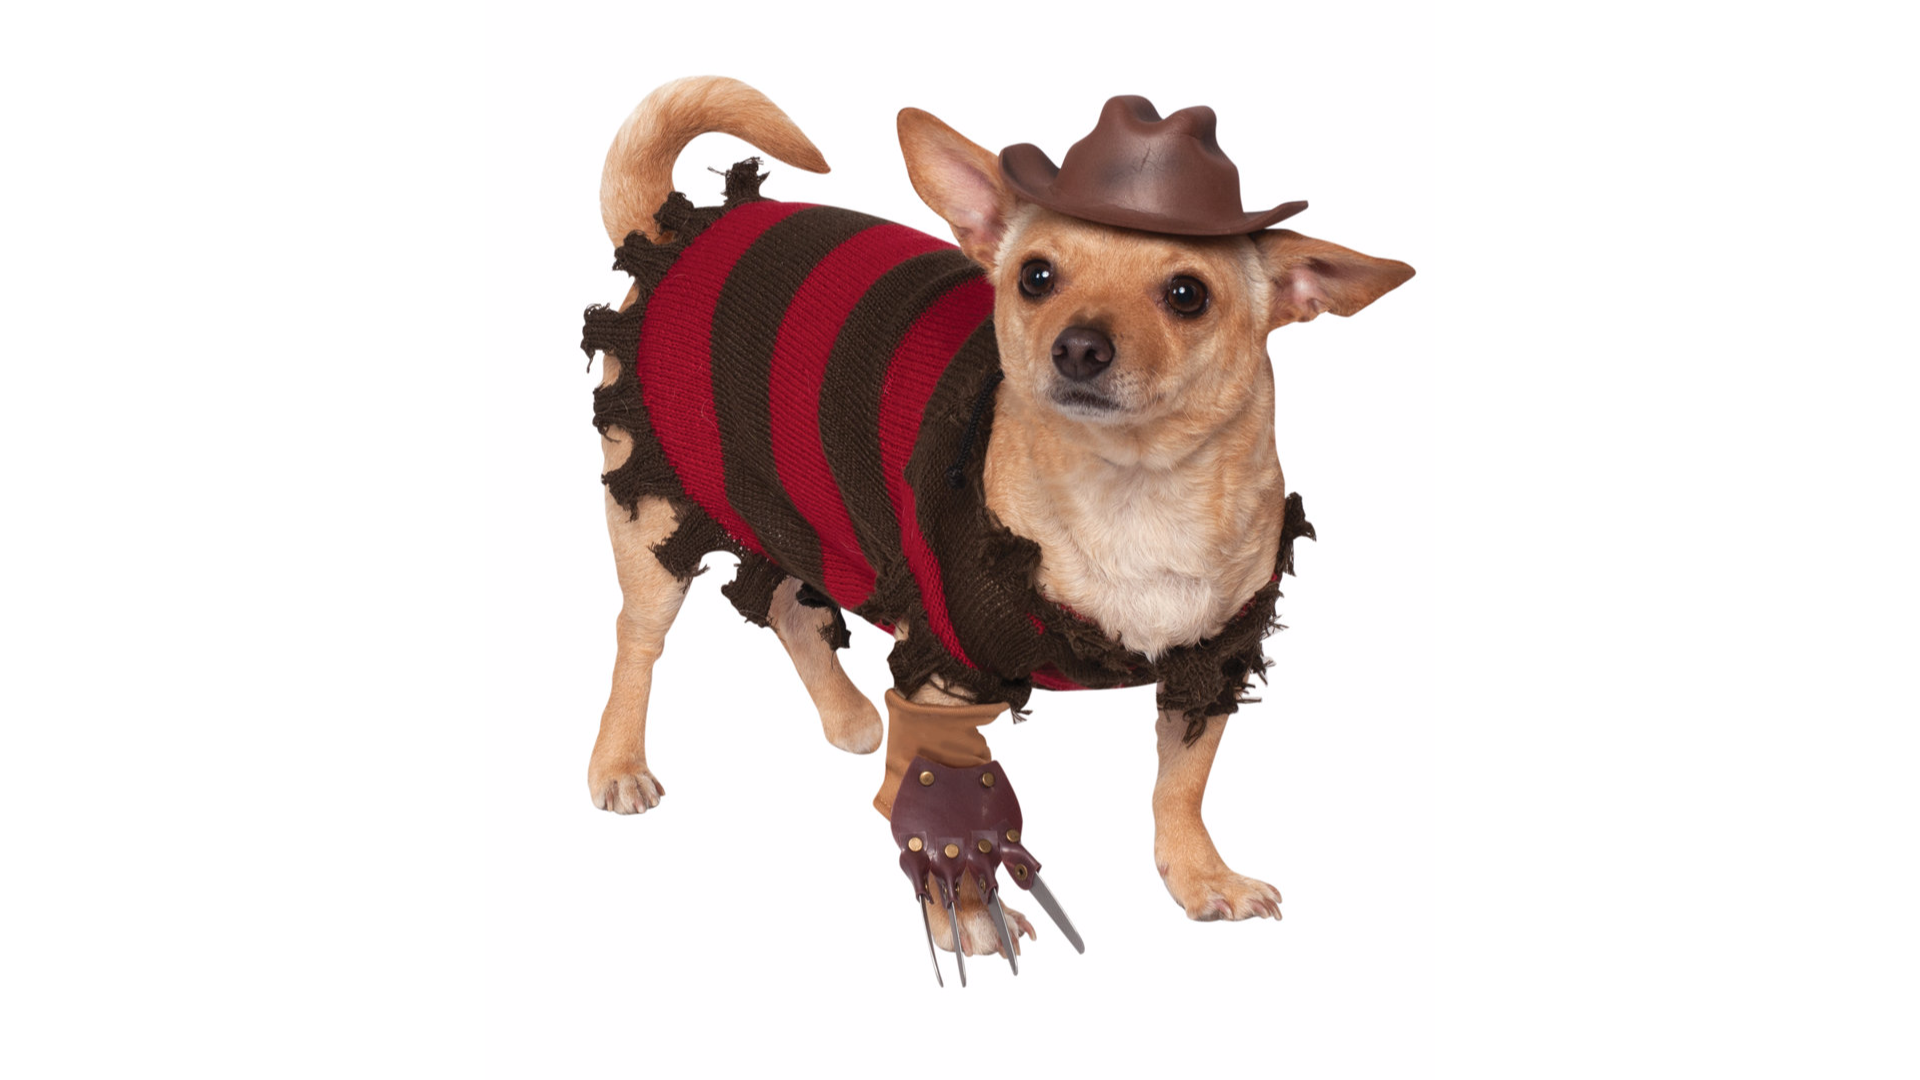 This cuddly nightmare of a costume